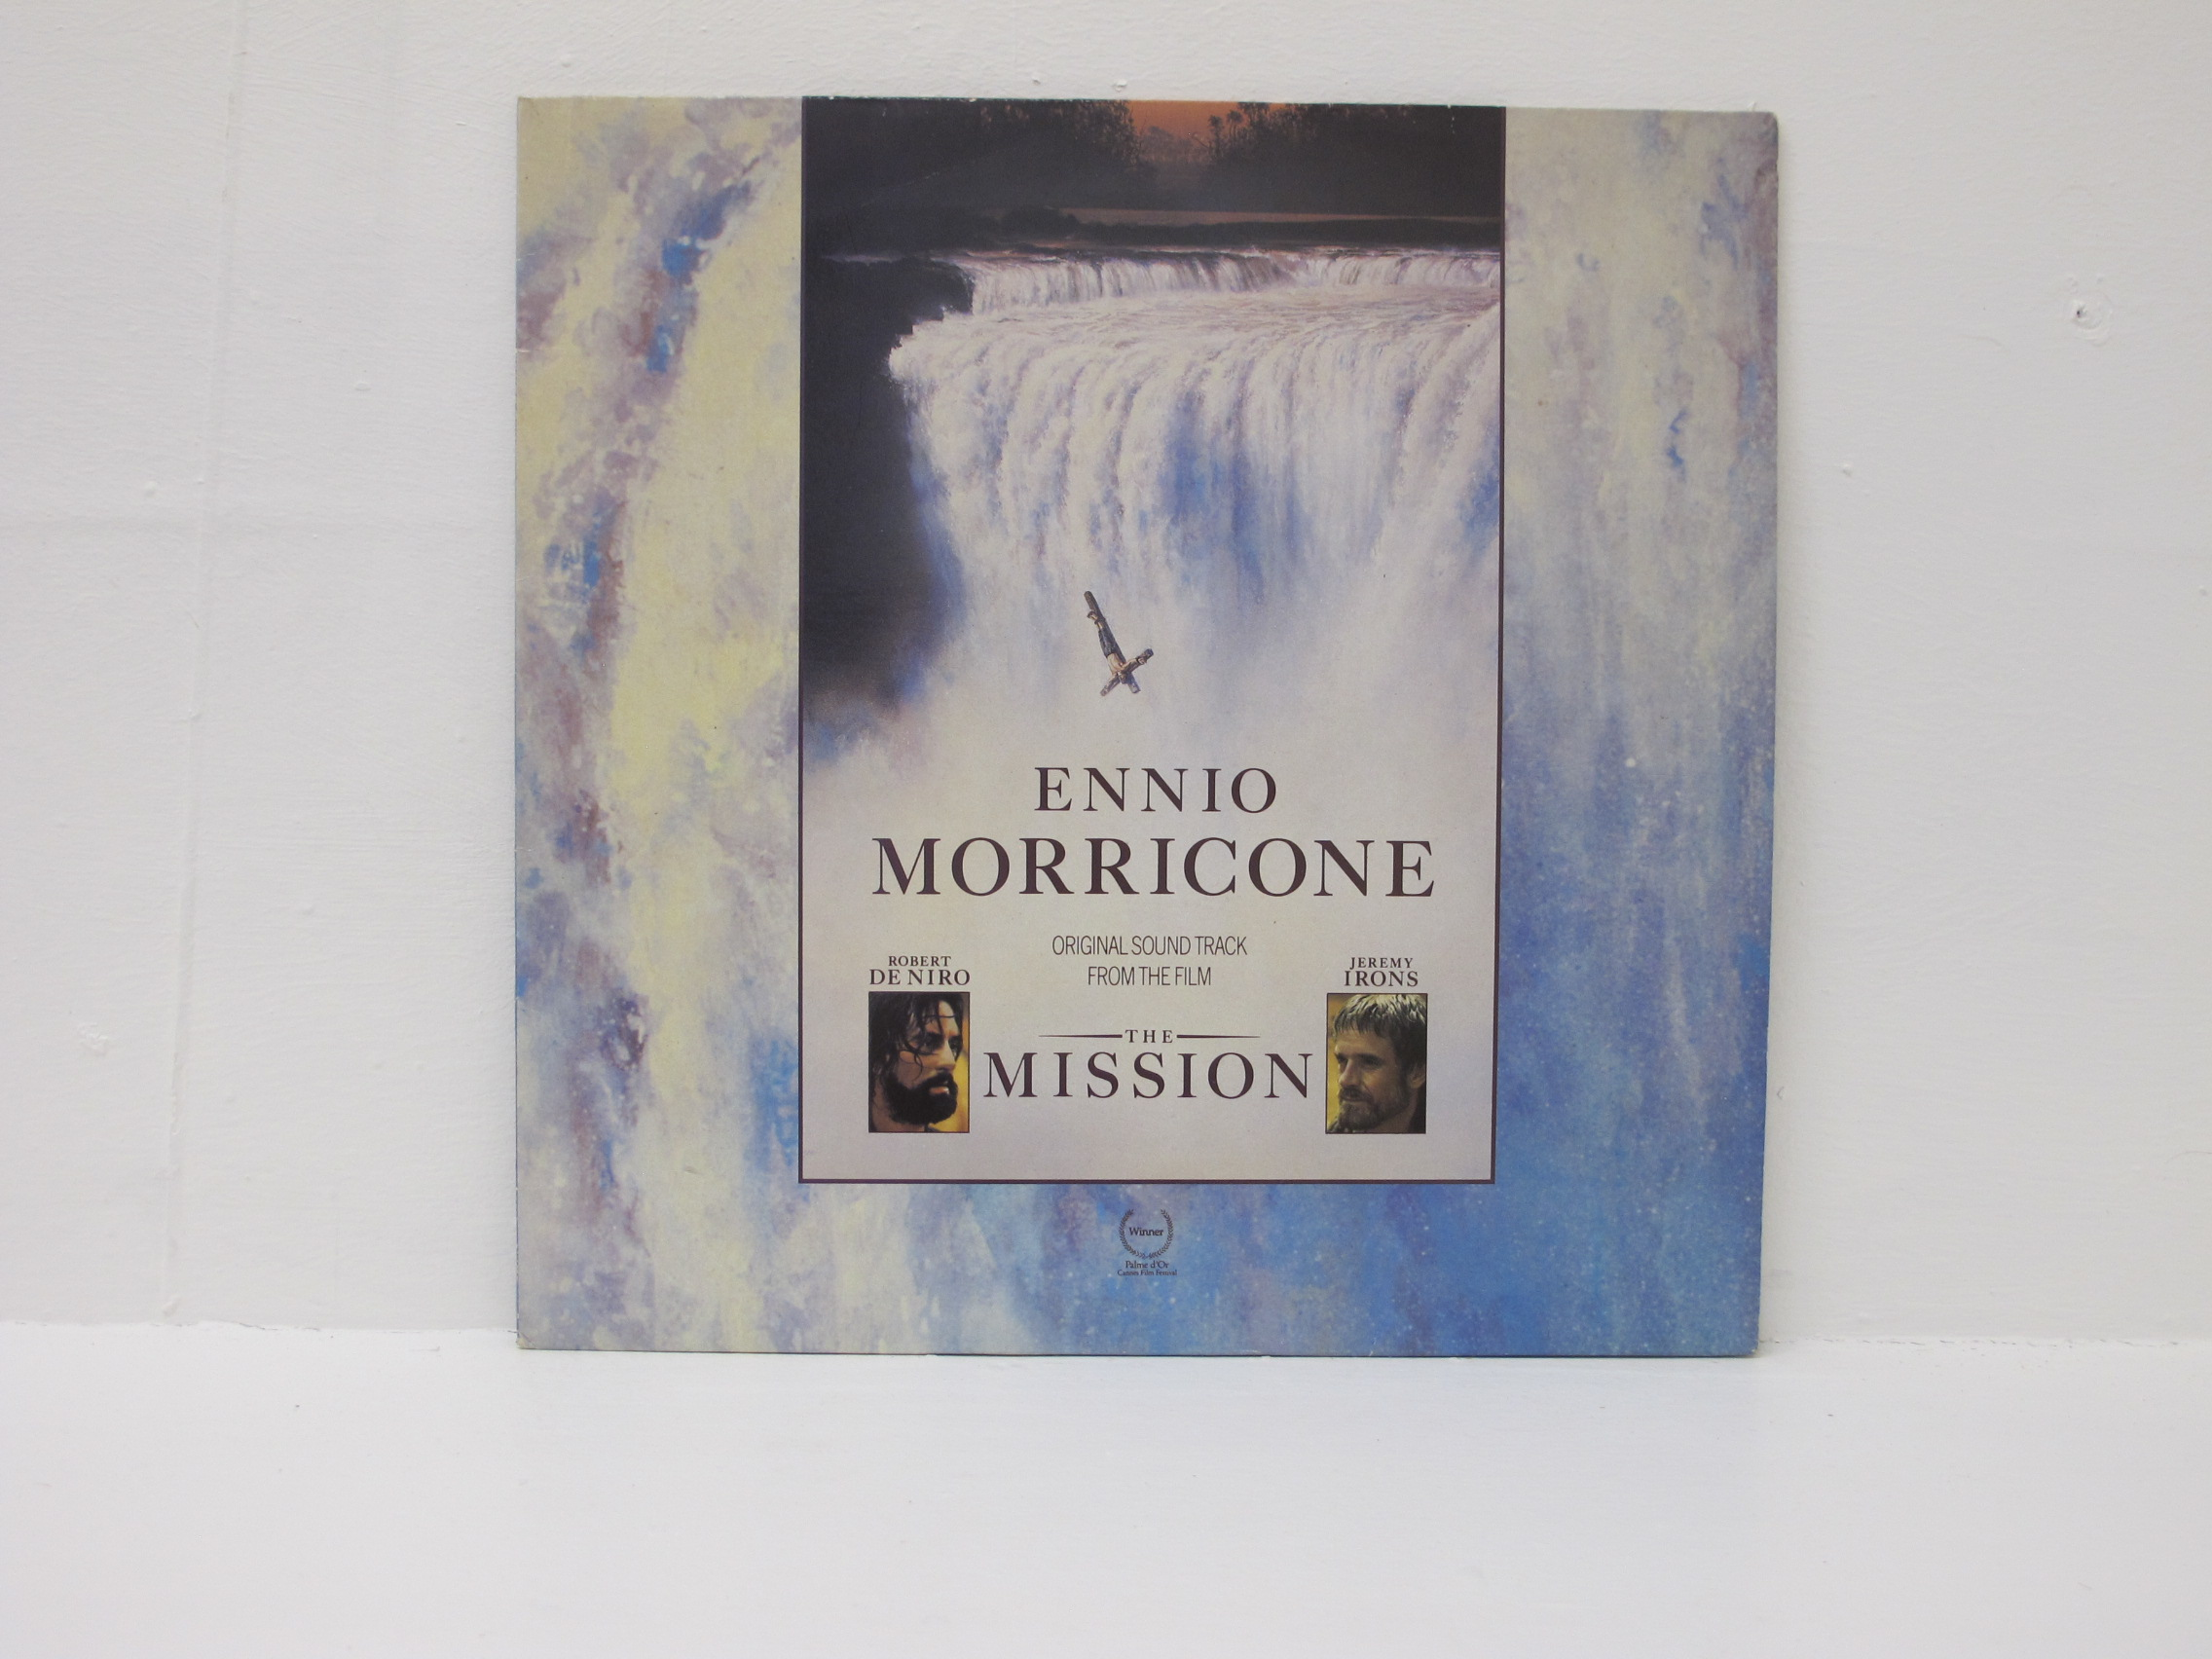 Ennio Morricone - The Mission